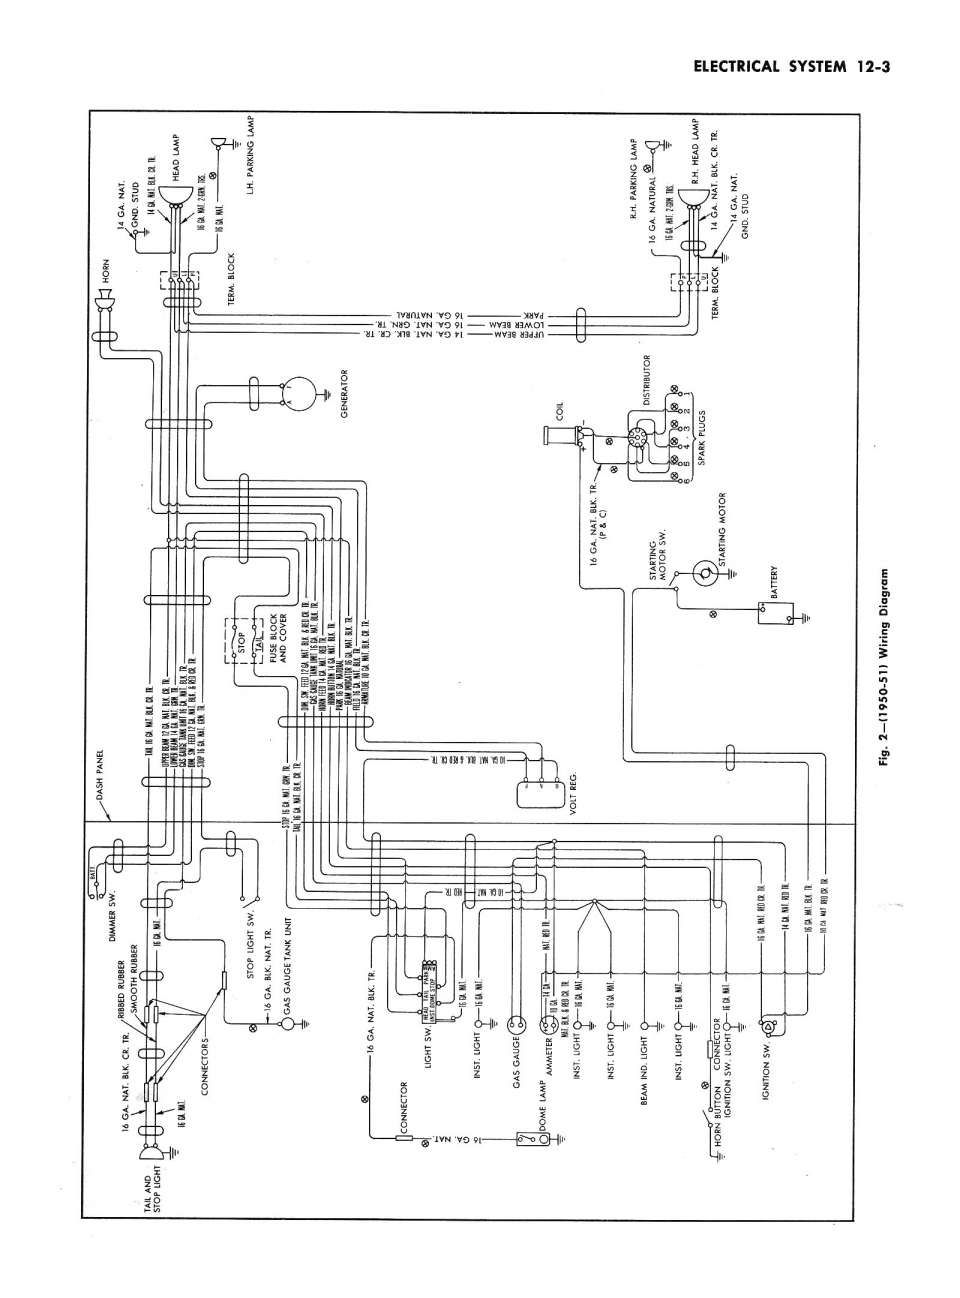 12+ 1966 Chevy Truck Ignition Switch Wiring Diagram